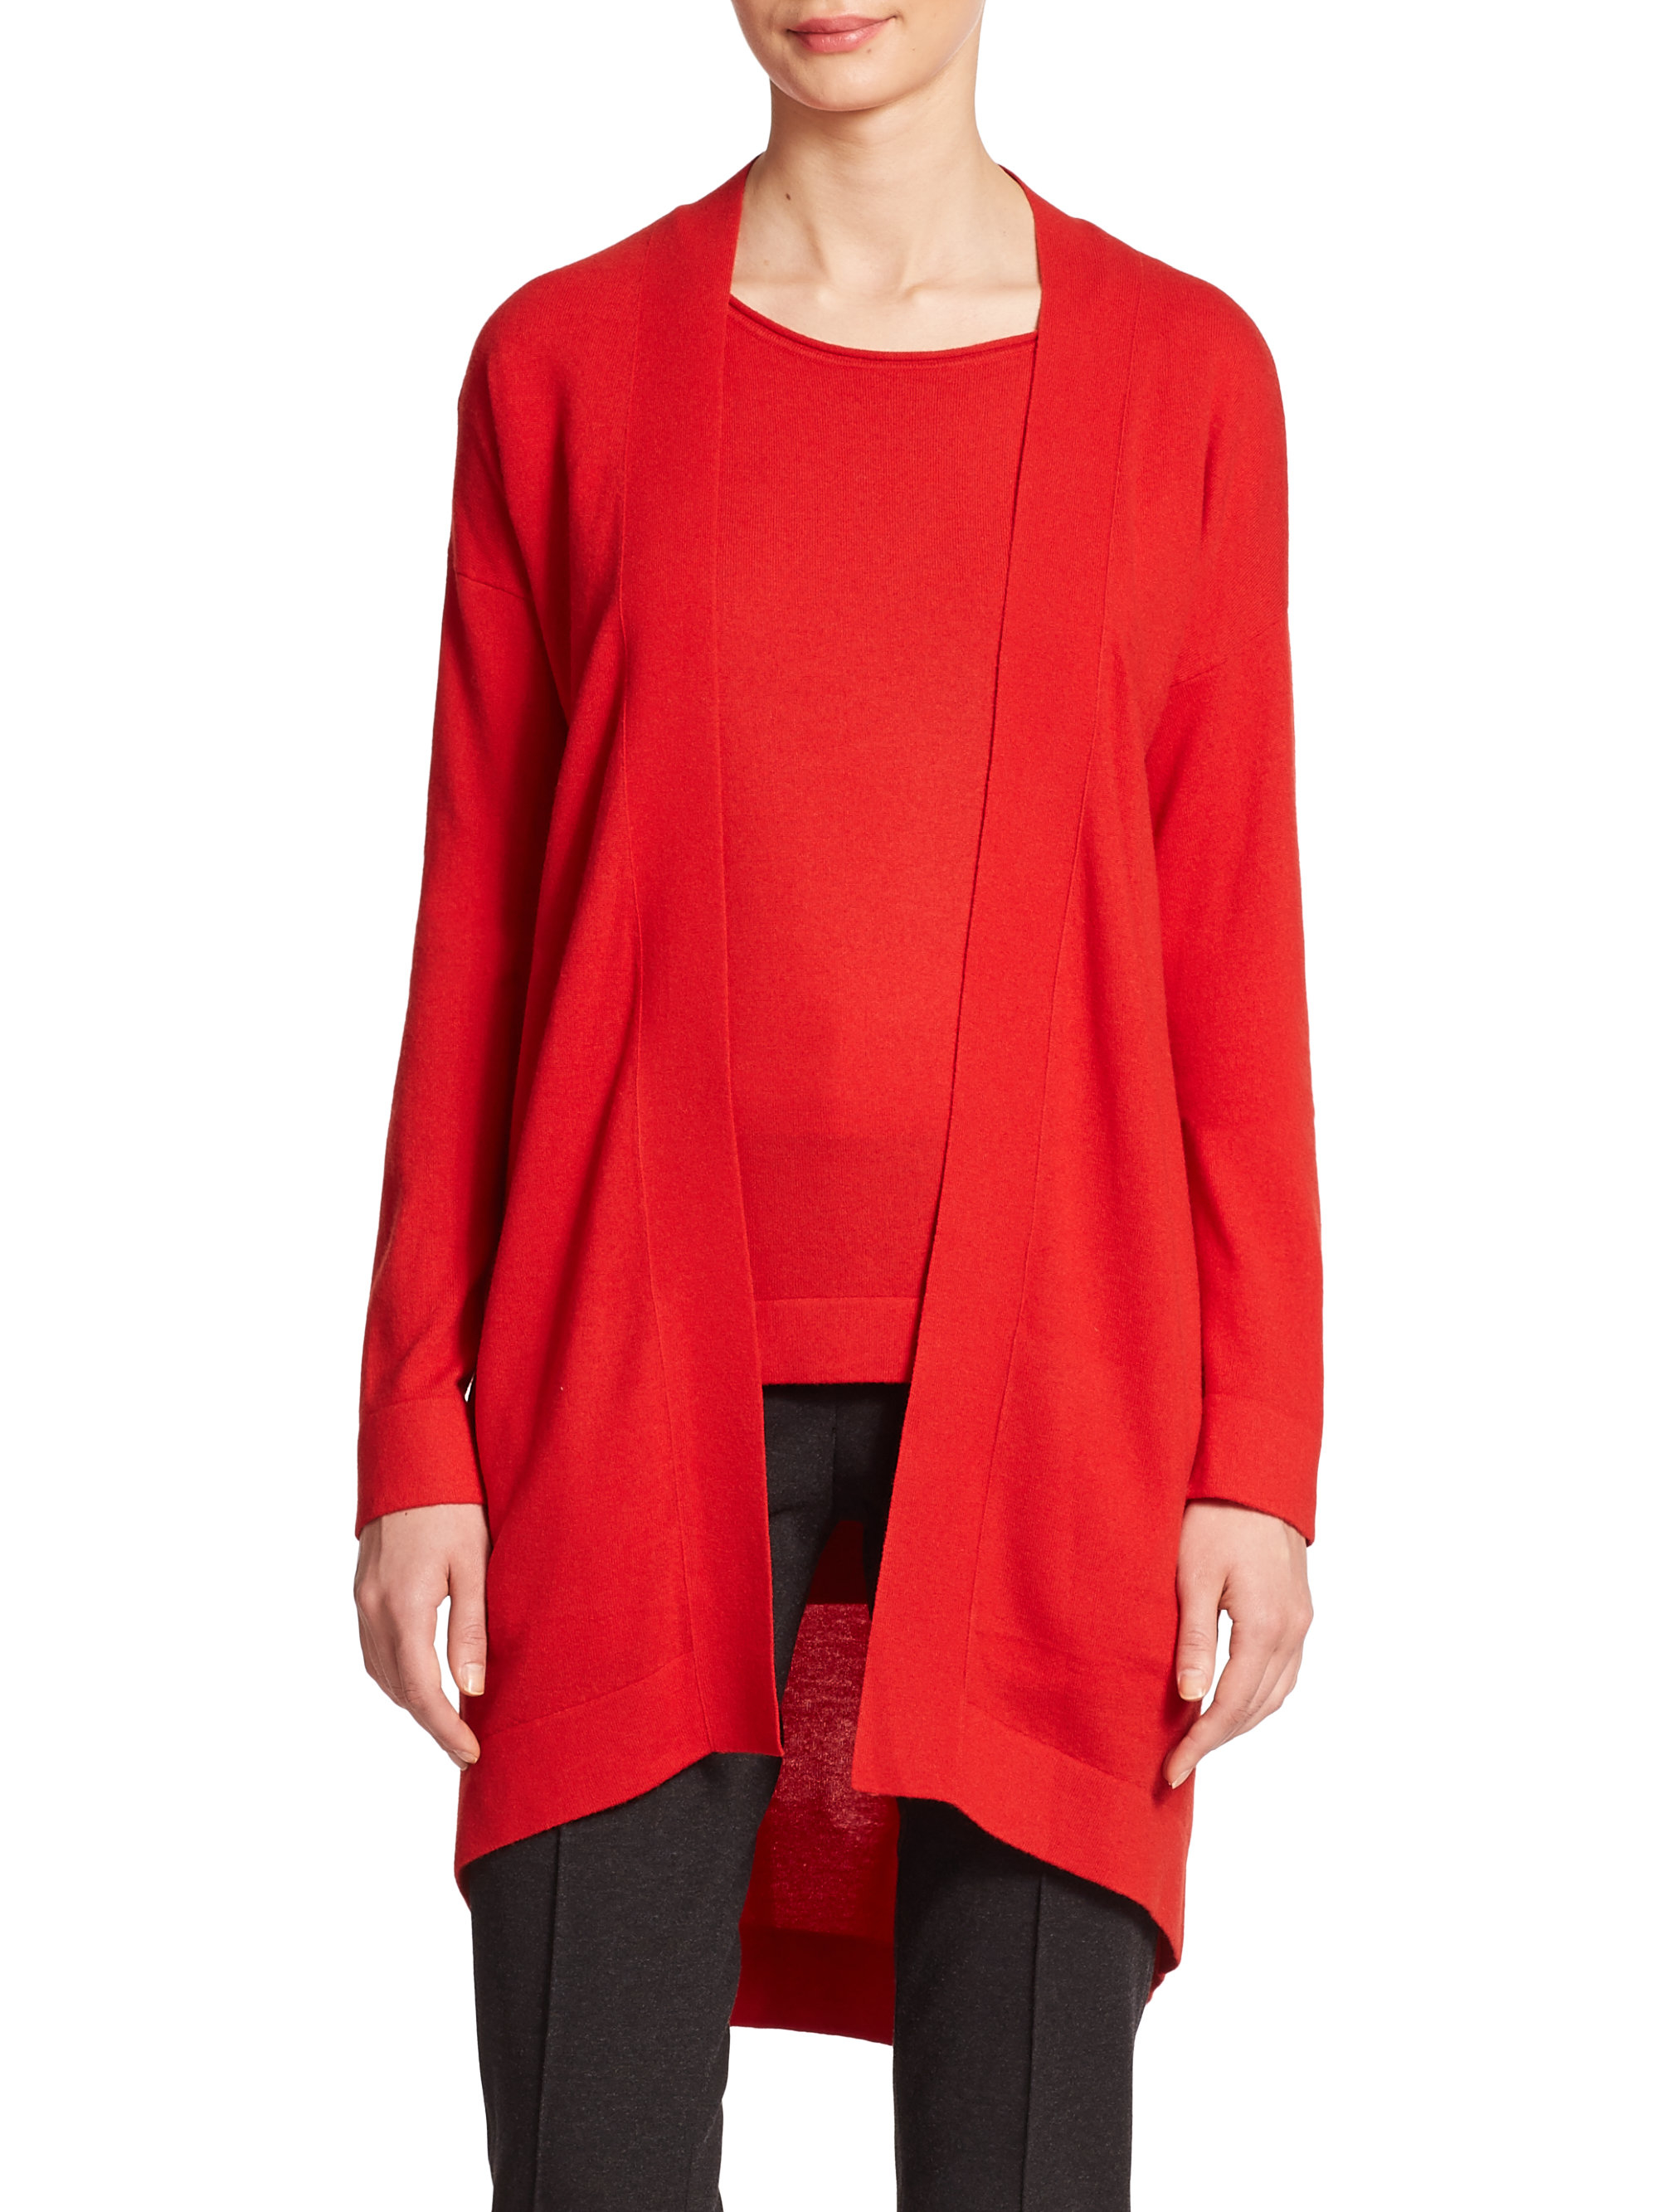 Lyst - Akris Punto Long Wool Open-front Cardigan in Red